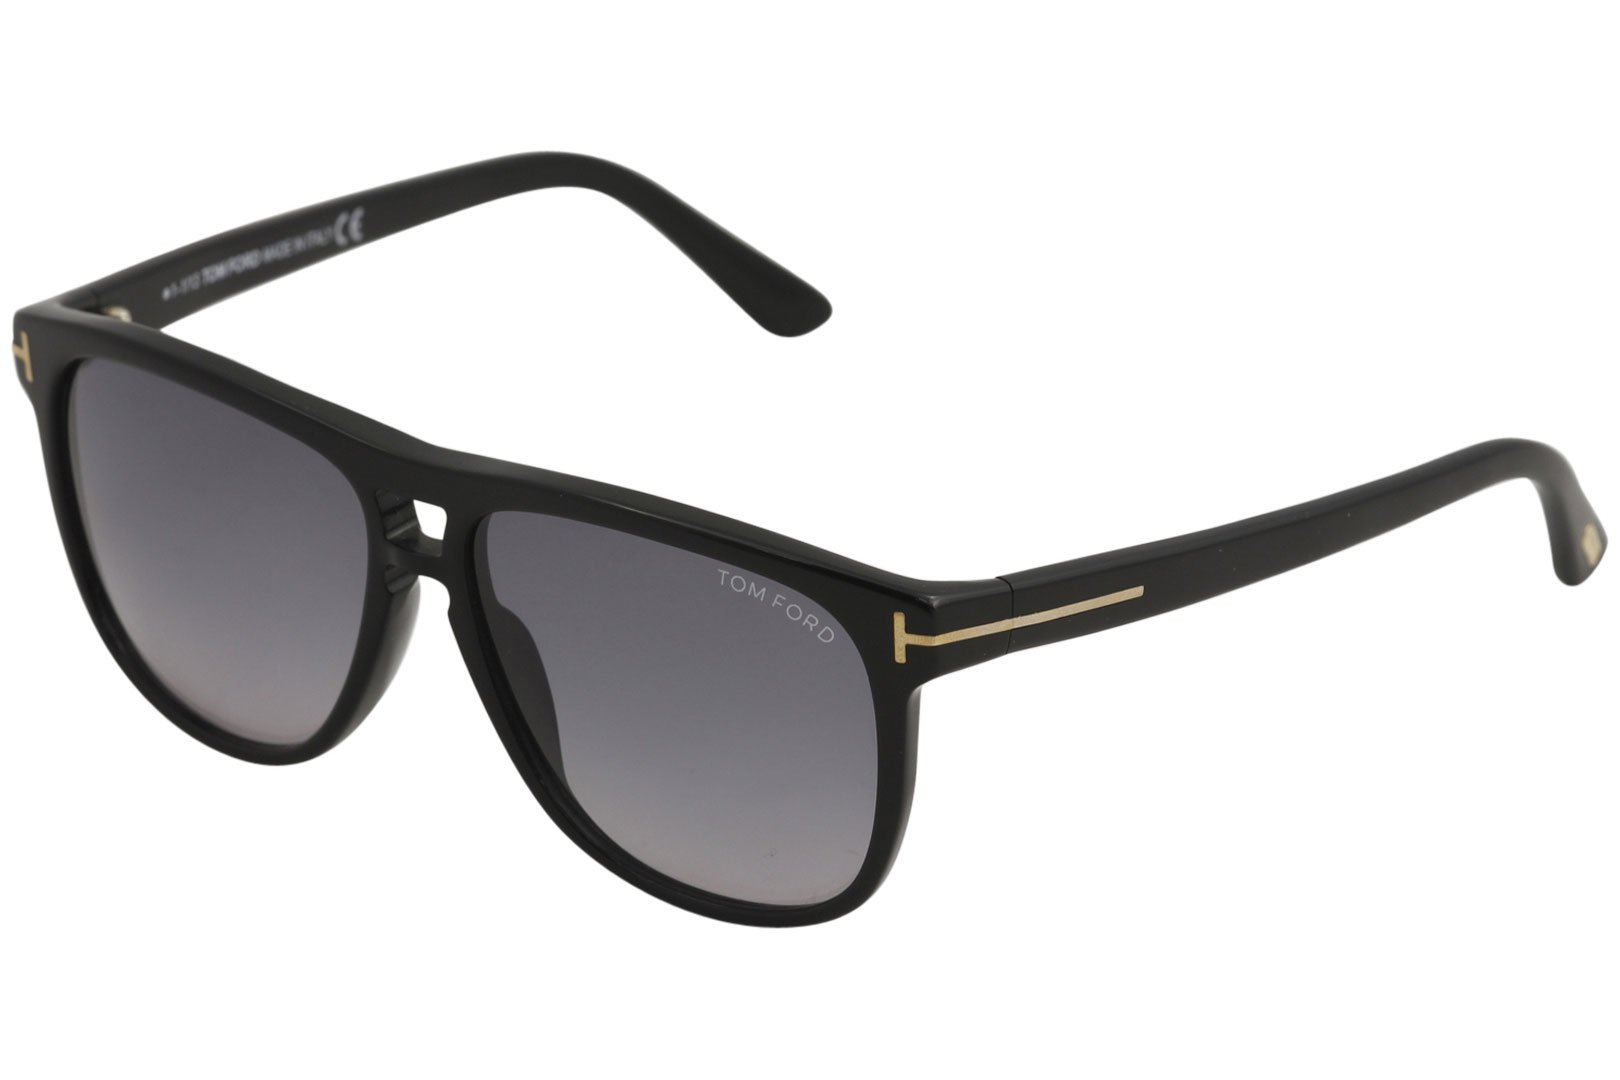 Tom Ford 0288 01N Black Lennon Wayfarer Sunglasses Lens Category 2